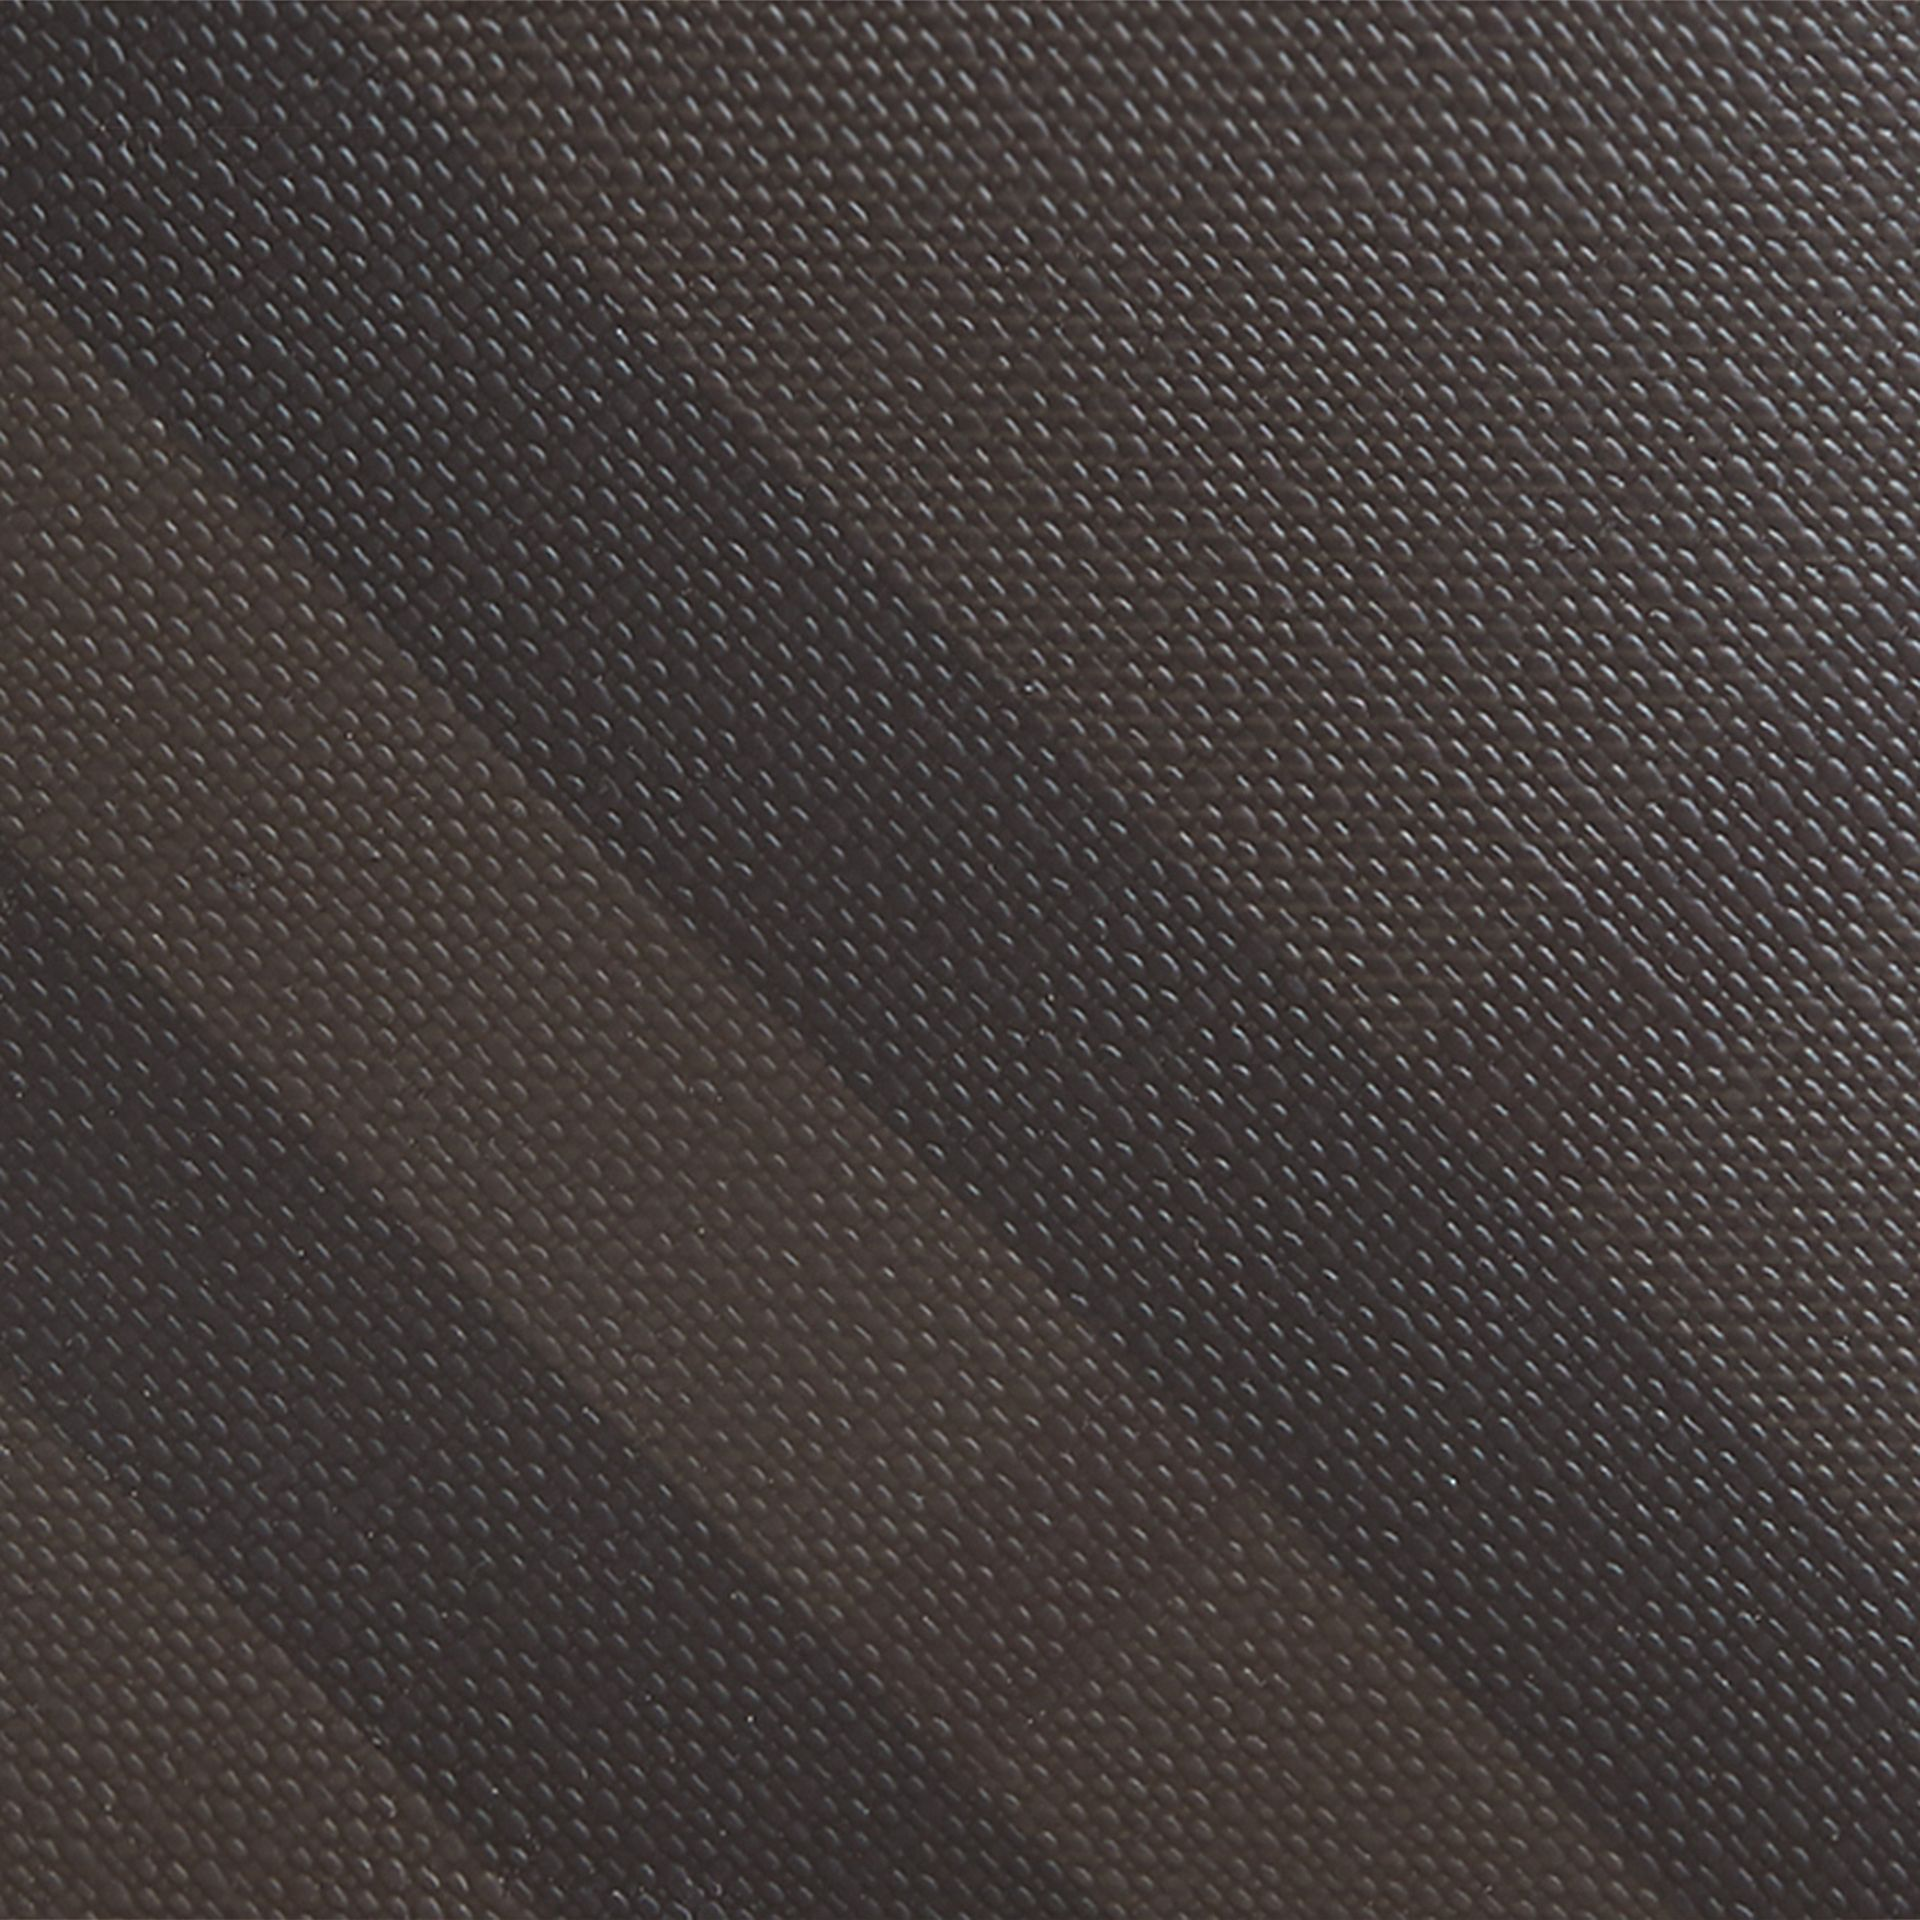 London Check International Bifold Coin Wallet in Chocolate/black - Men | Burberry - gallery image 1